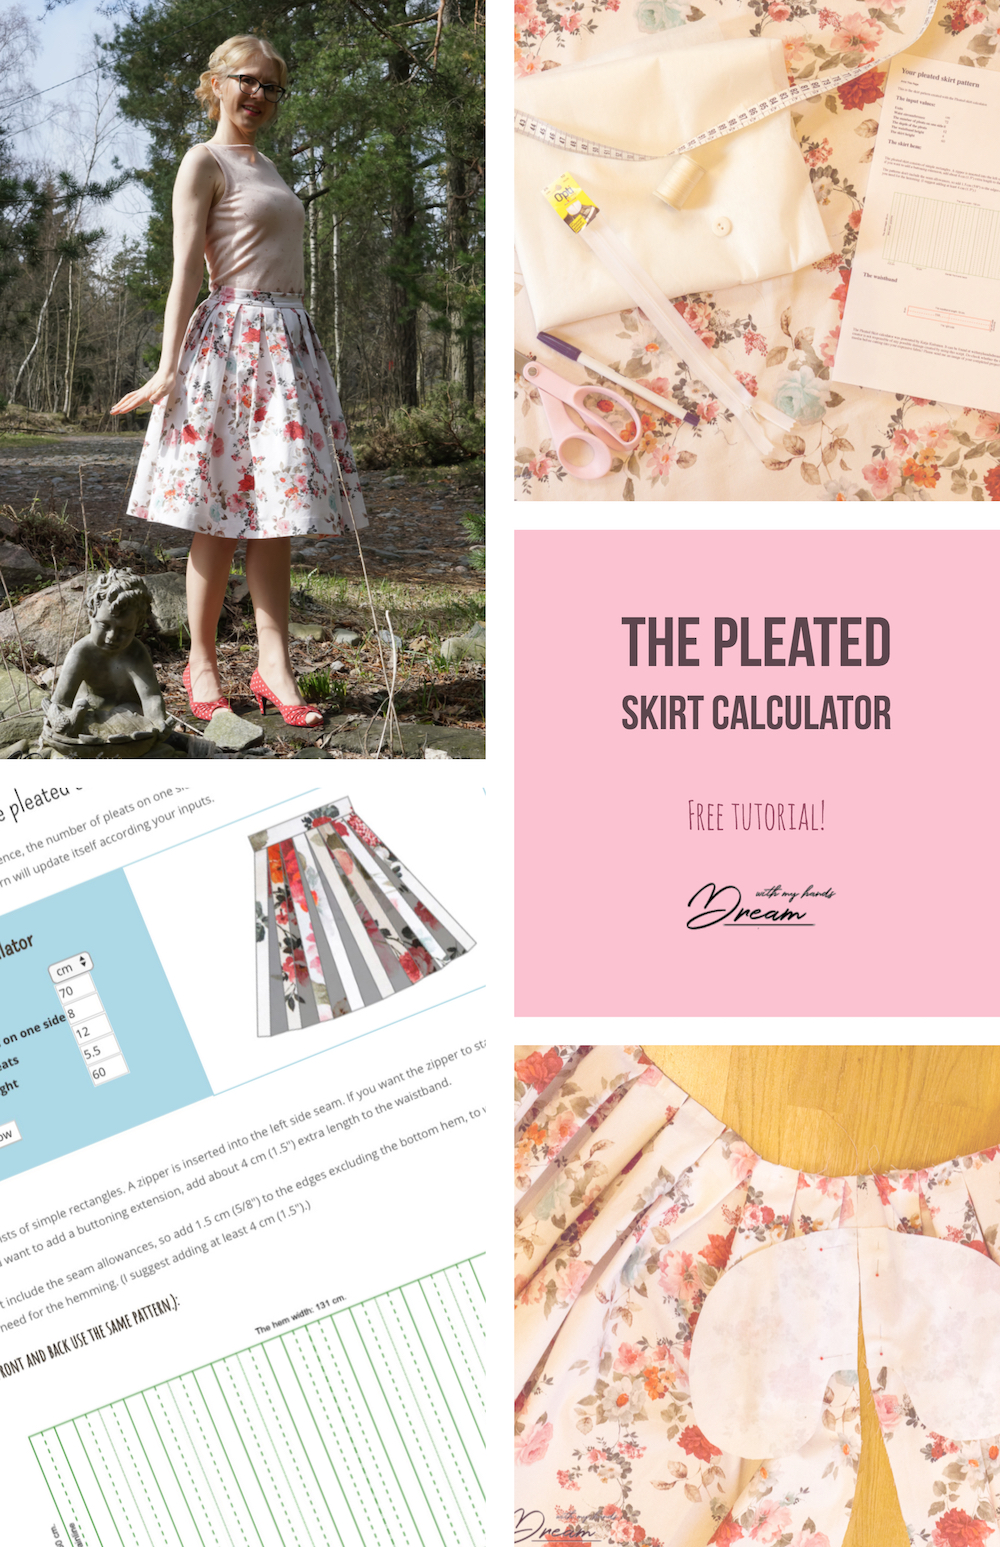 The pleated skirt calculator